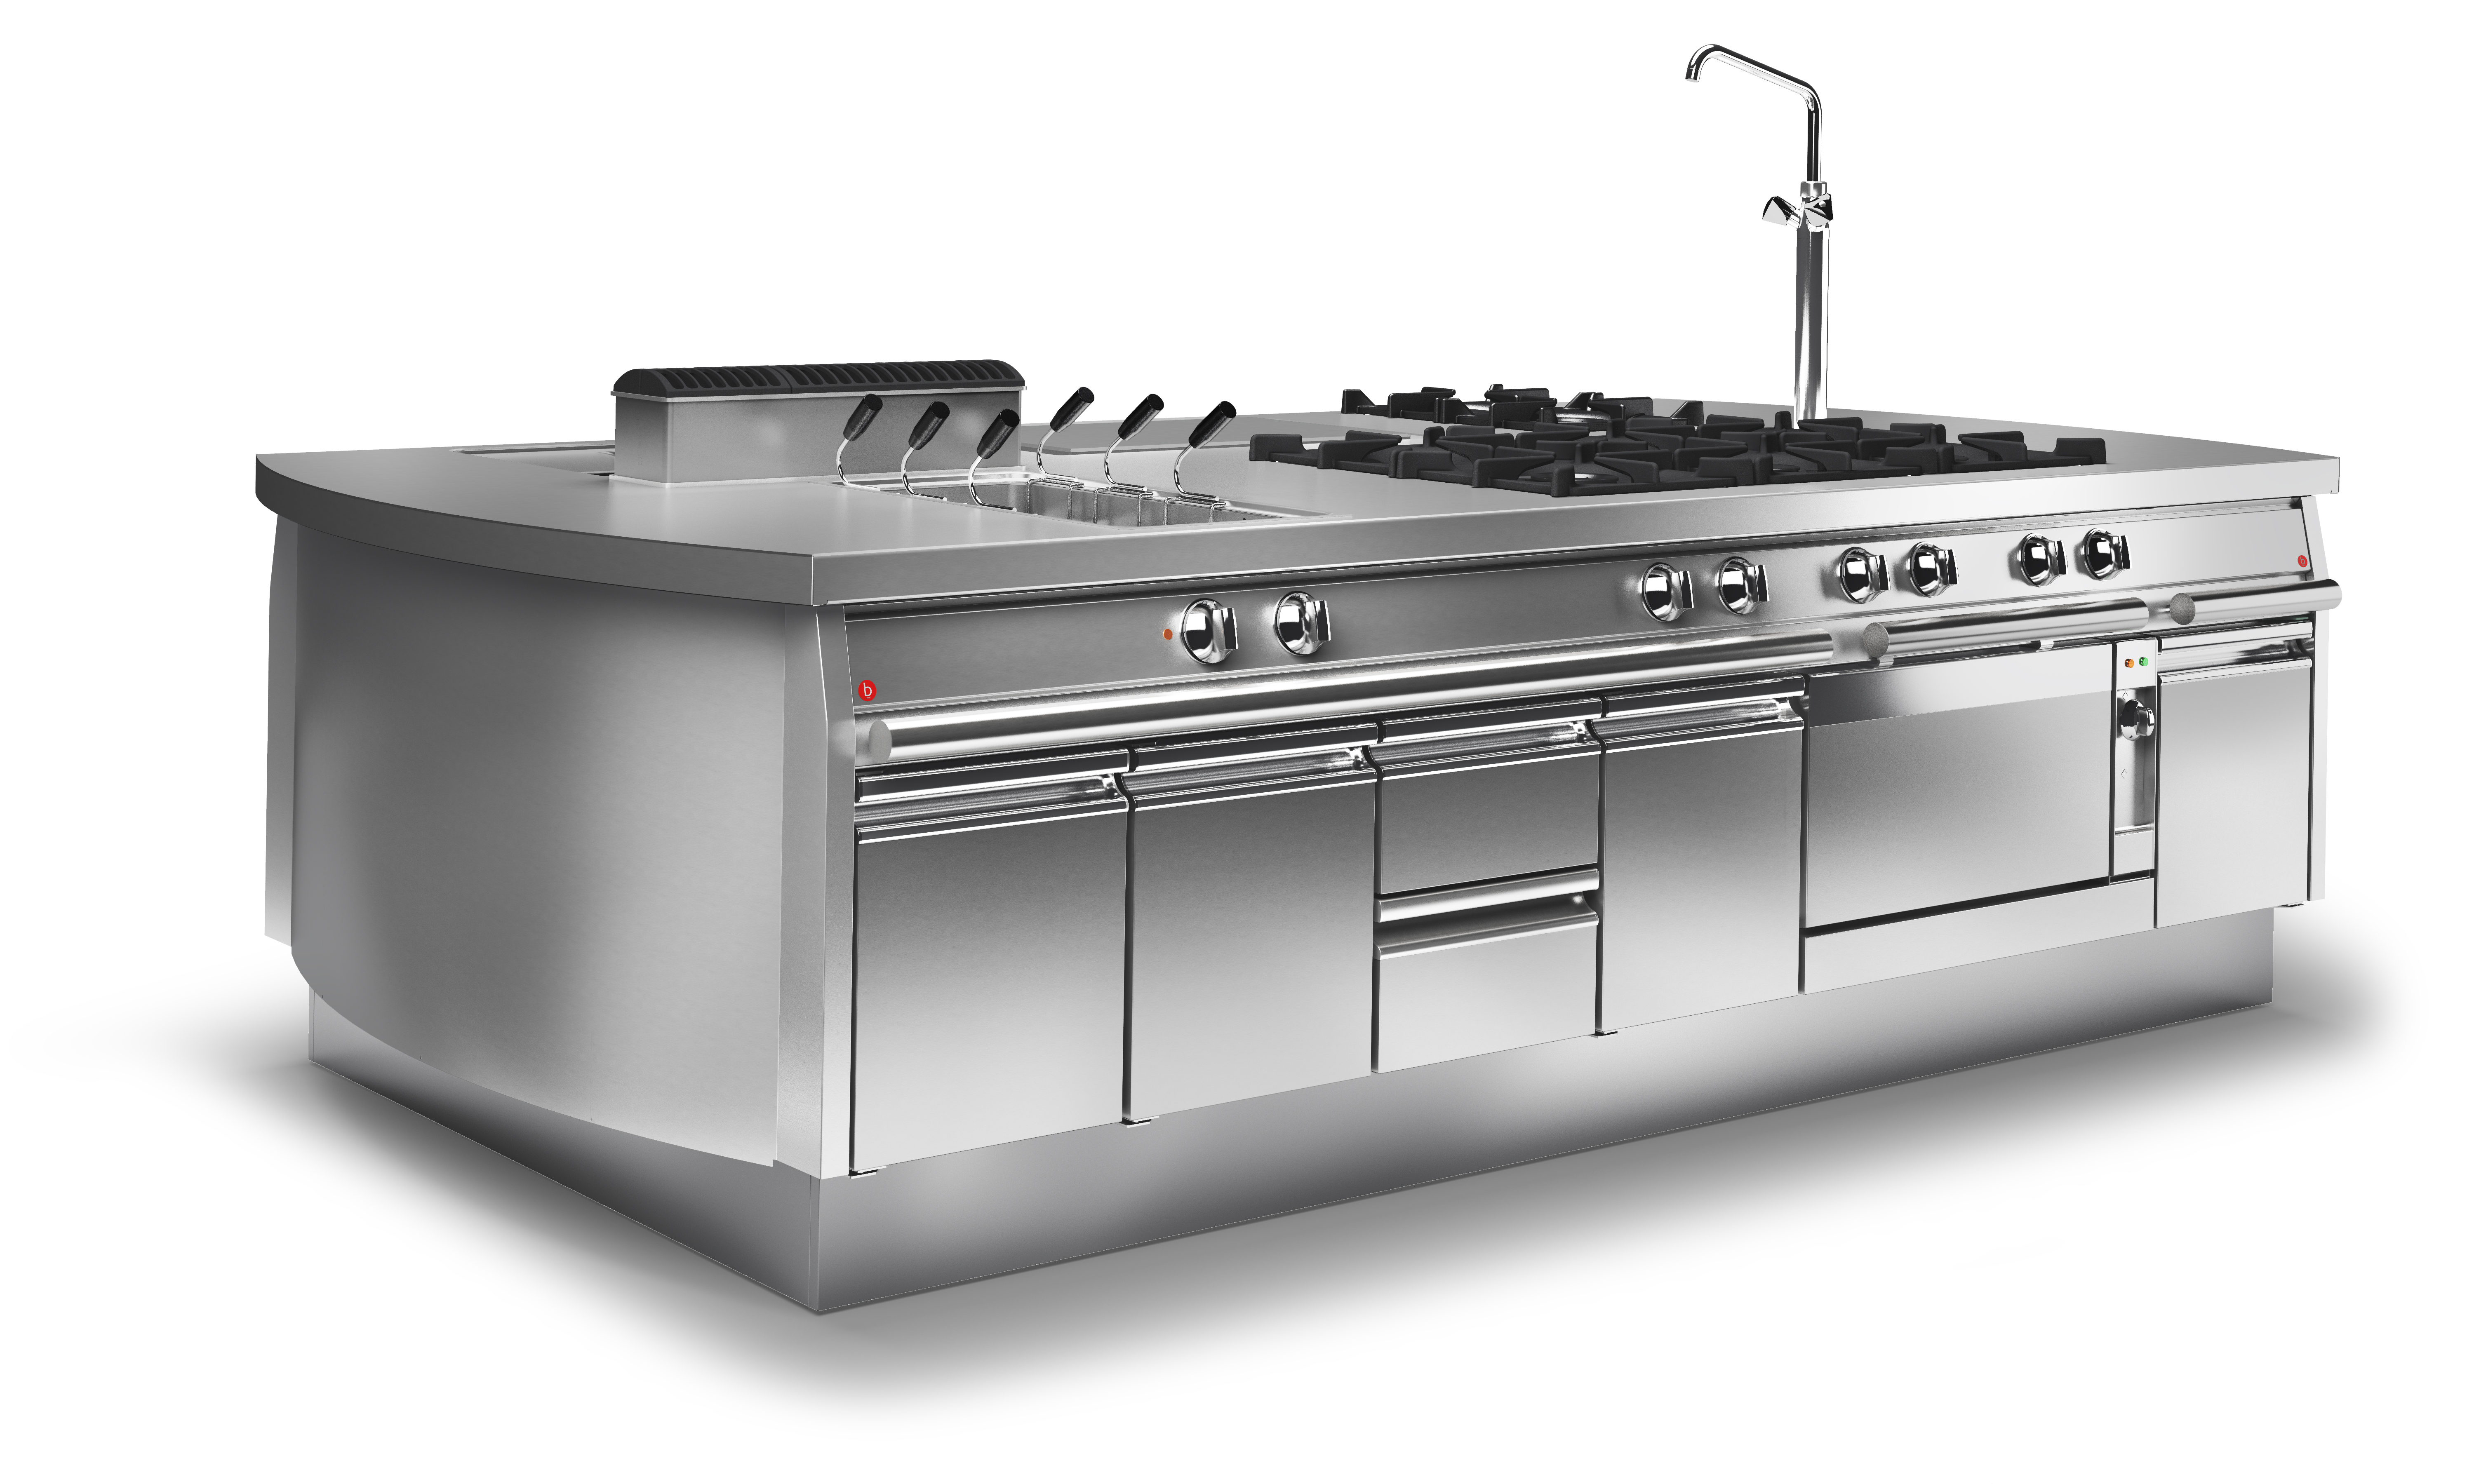 Bropenny S A R L Industrial Kitchen Equipment Lebanon